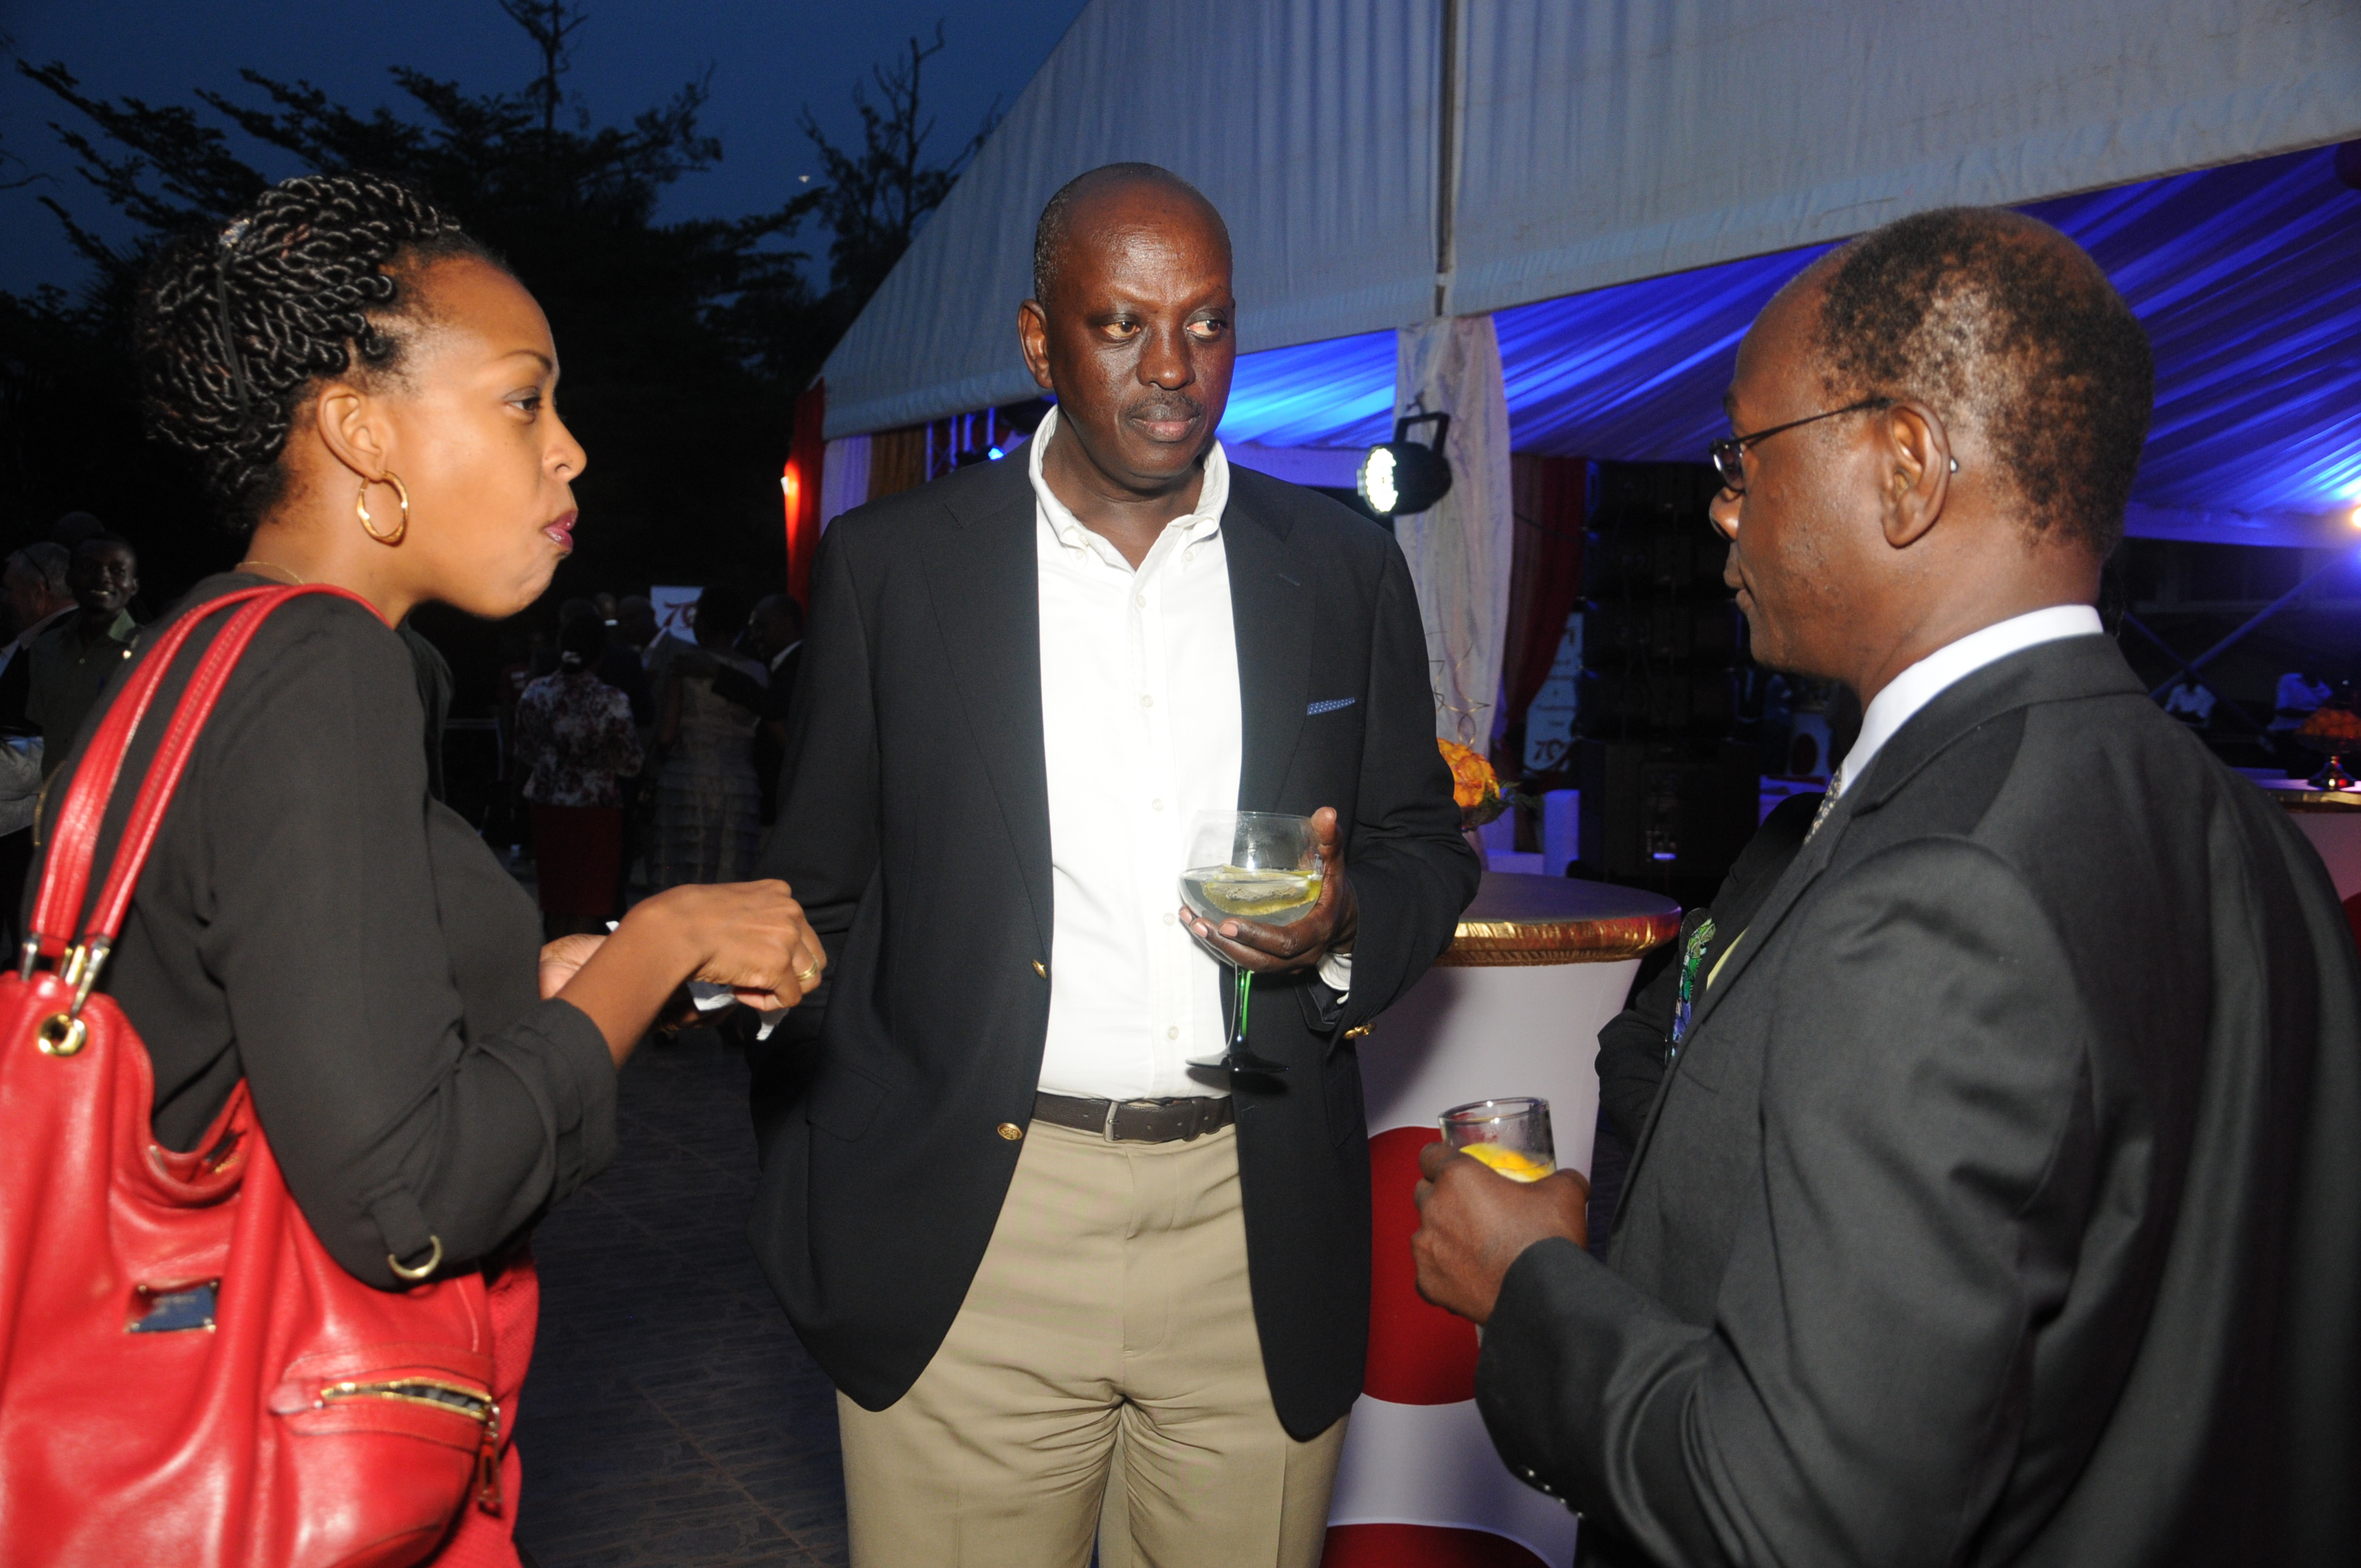 ubl-marketing-director-juliana-kaggwa-shares-a-moment-during-the-ceo-s-dinner